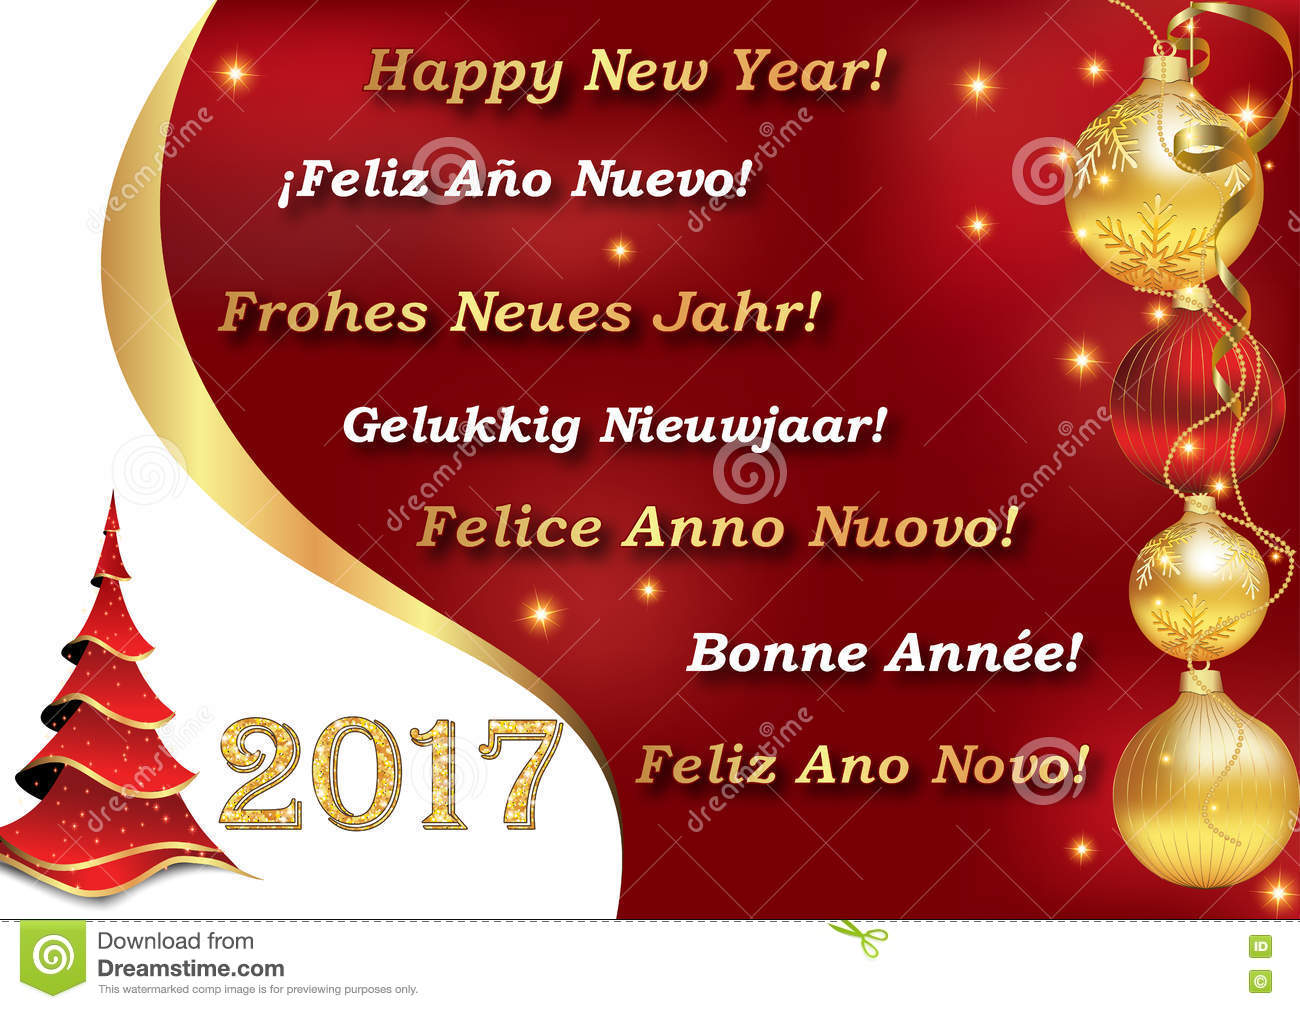 happy new year 2017 in many languages - Merry Christmas And Happy New Year In Italian